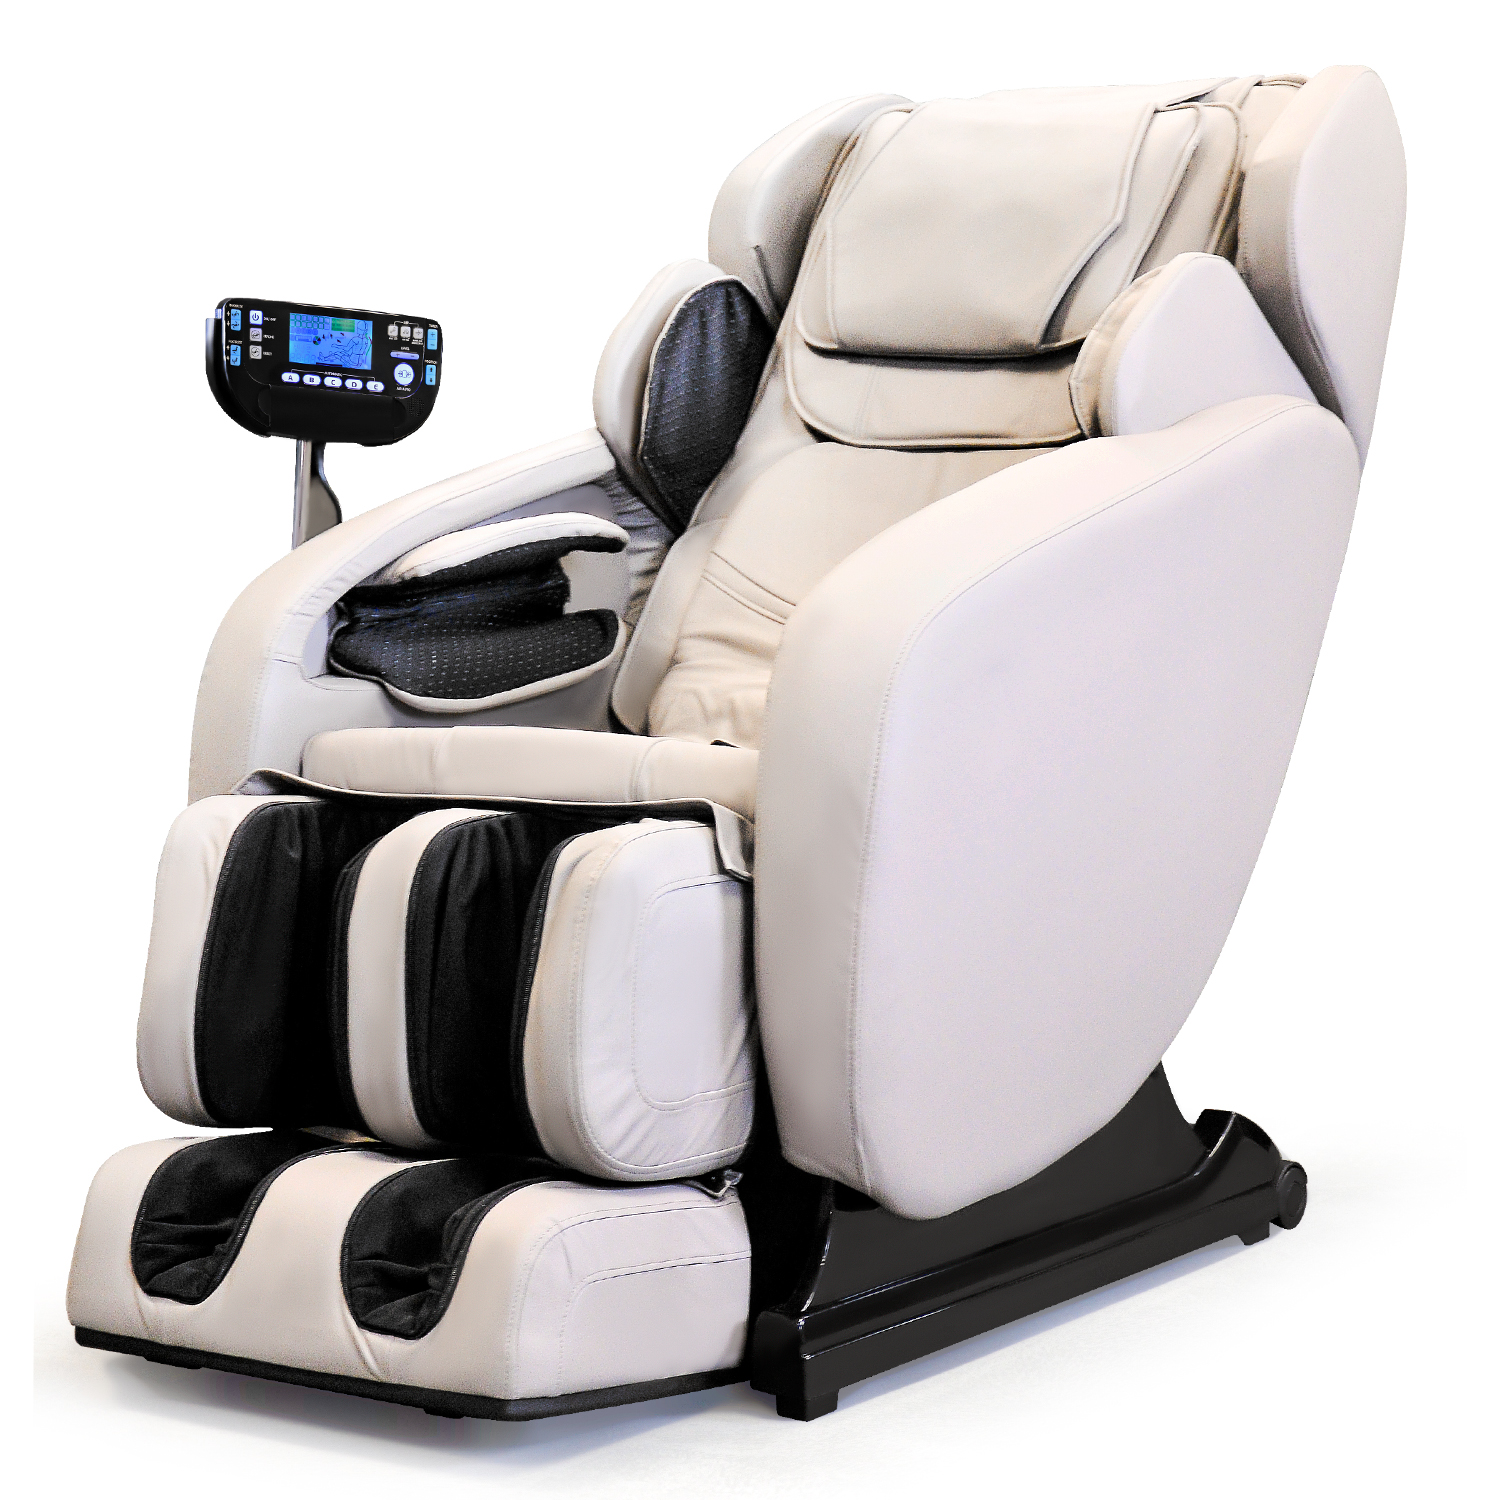 3D MASSAGE CHAIR ZERO GRAVITY RECLINER 628 Uncle Wiener s Wholesale